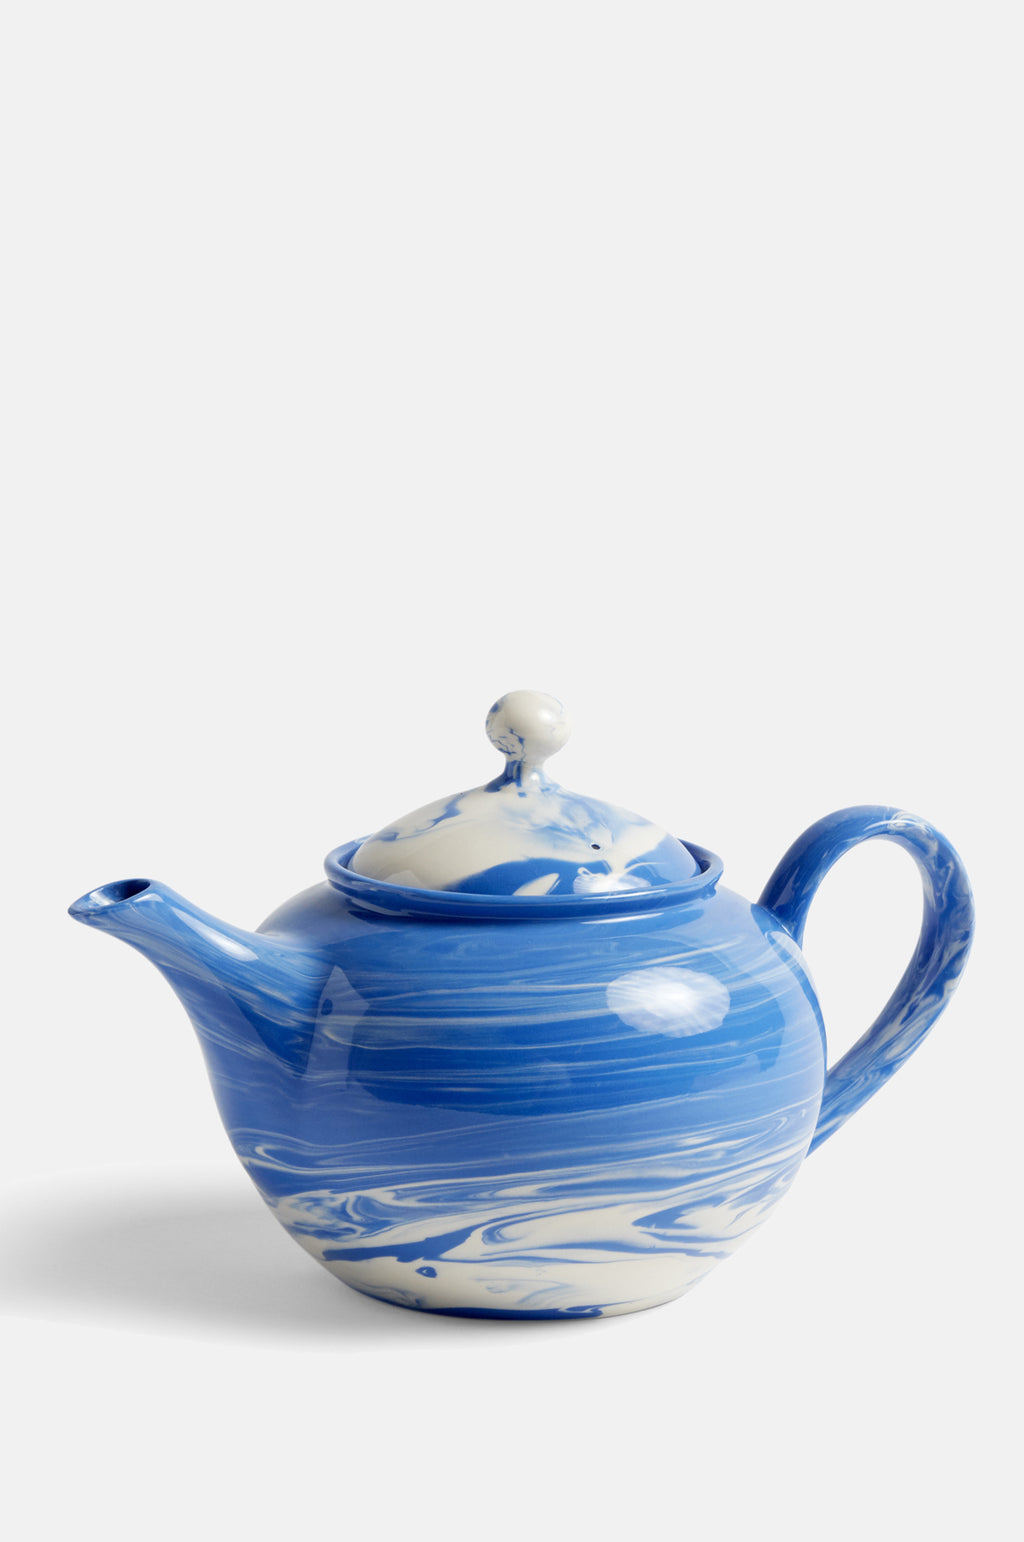 Marbled Teapot 0.8L in Blue